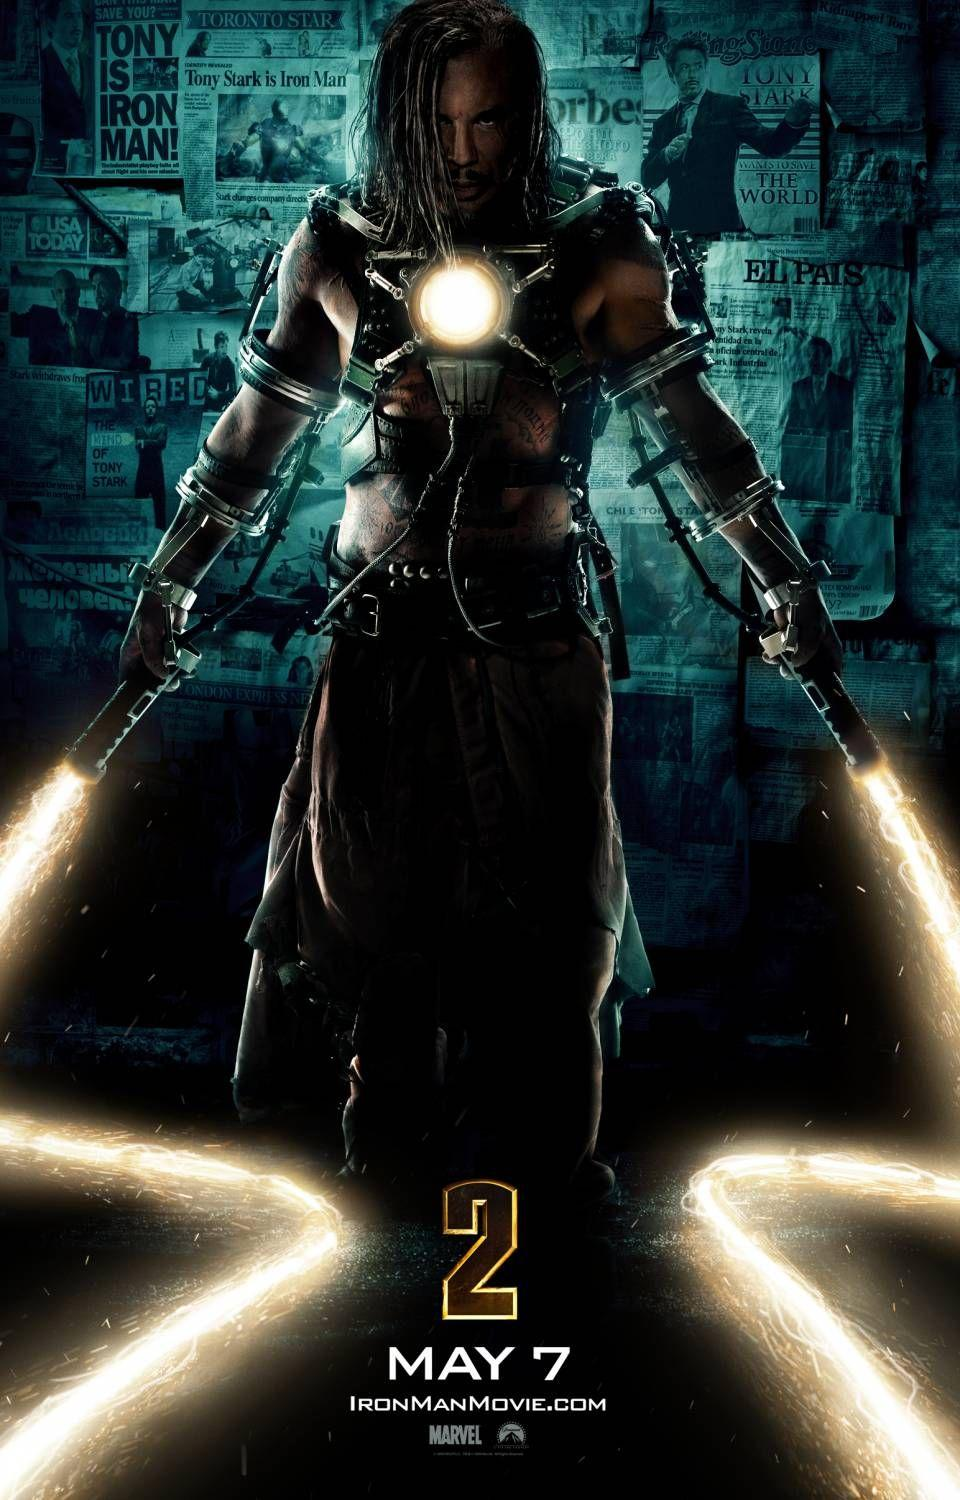 Iron Man 2: Extra Large Image Movie Poster - Internet Movie Poster Gallery Prix